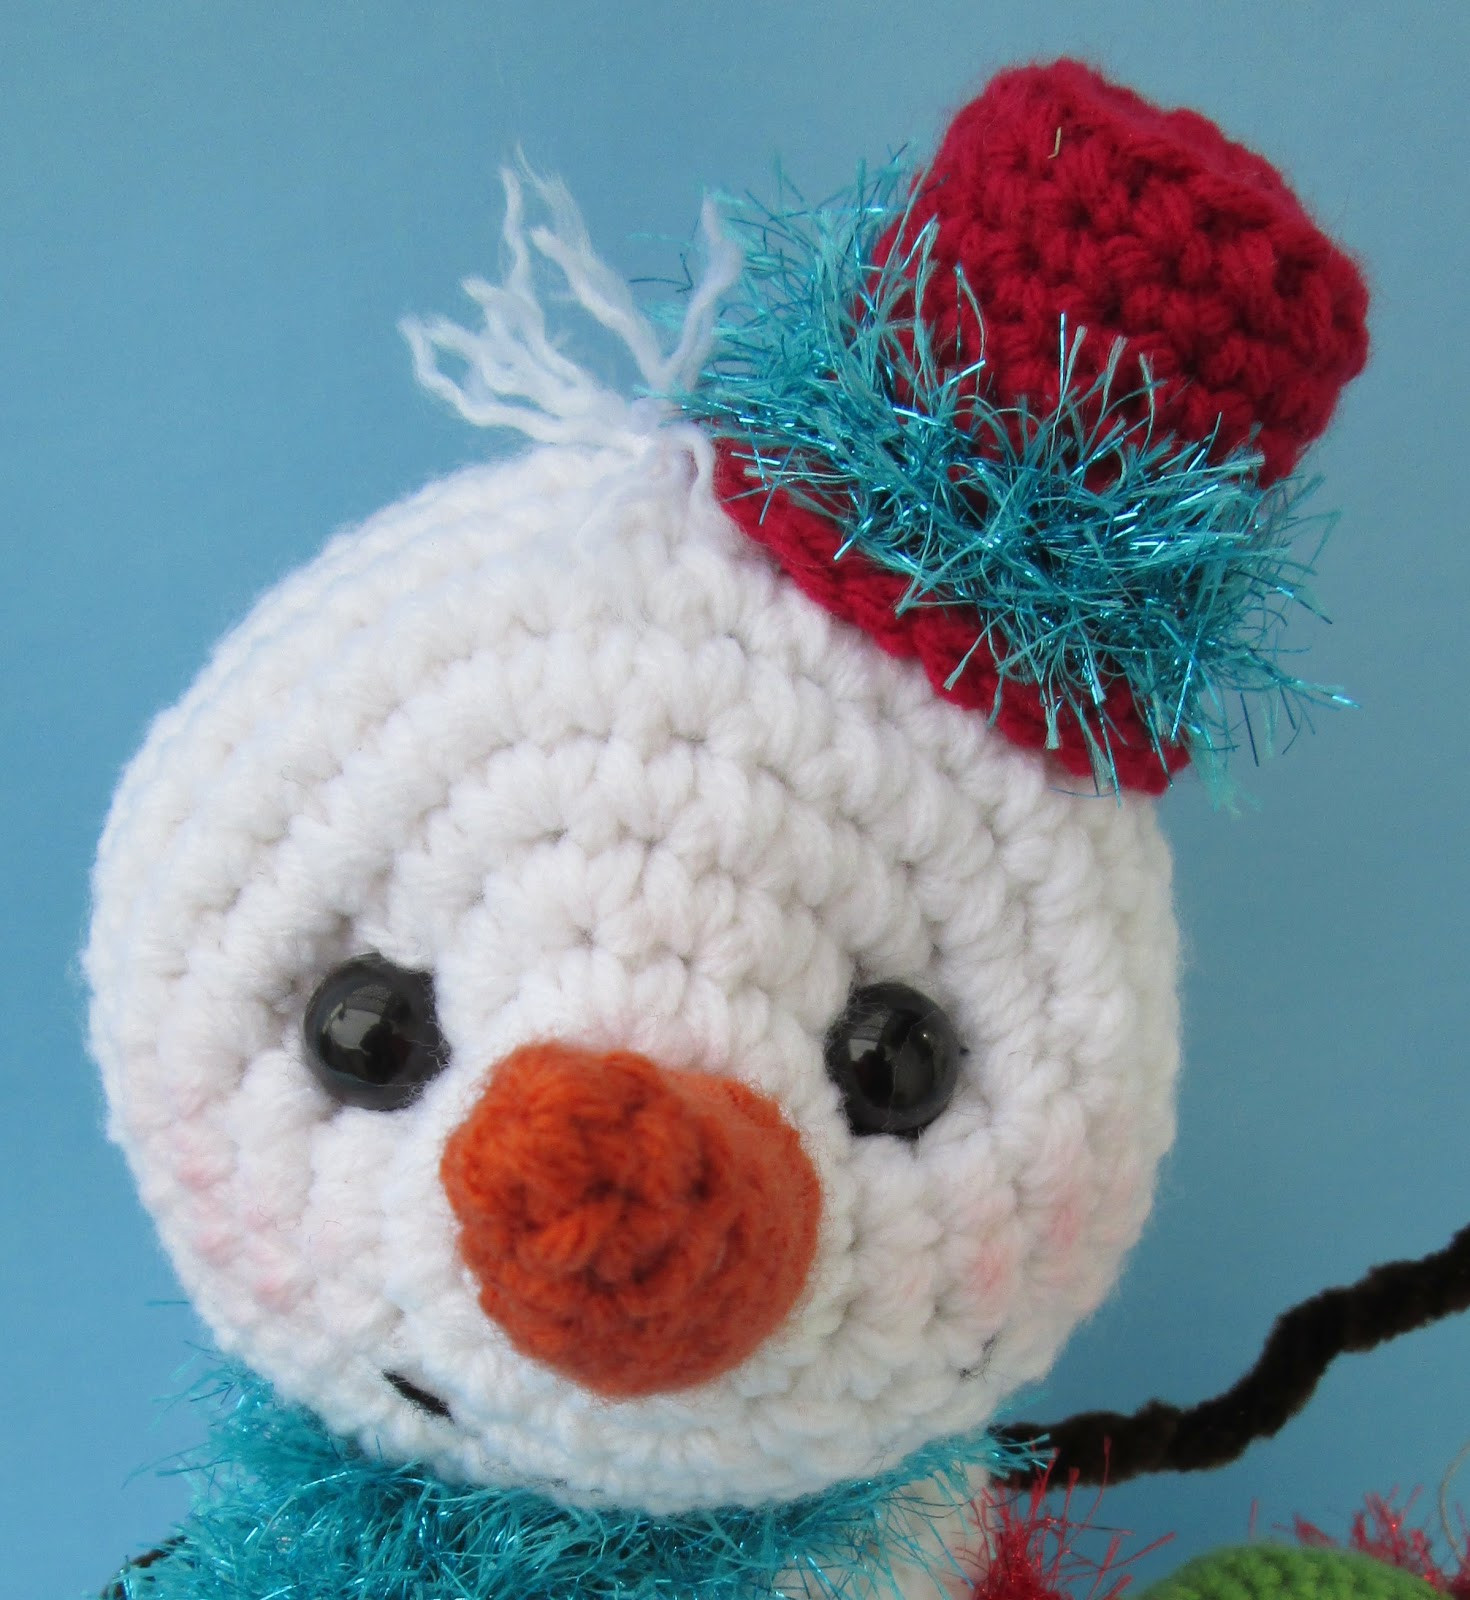 New Crochet Patterns Unique Wool and Whims New Holiday Patterns Of Perfect 50 Ideas New Crochet Patterns